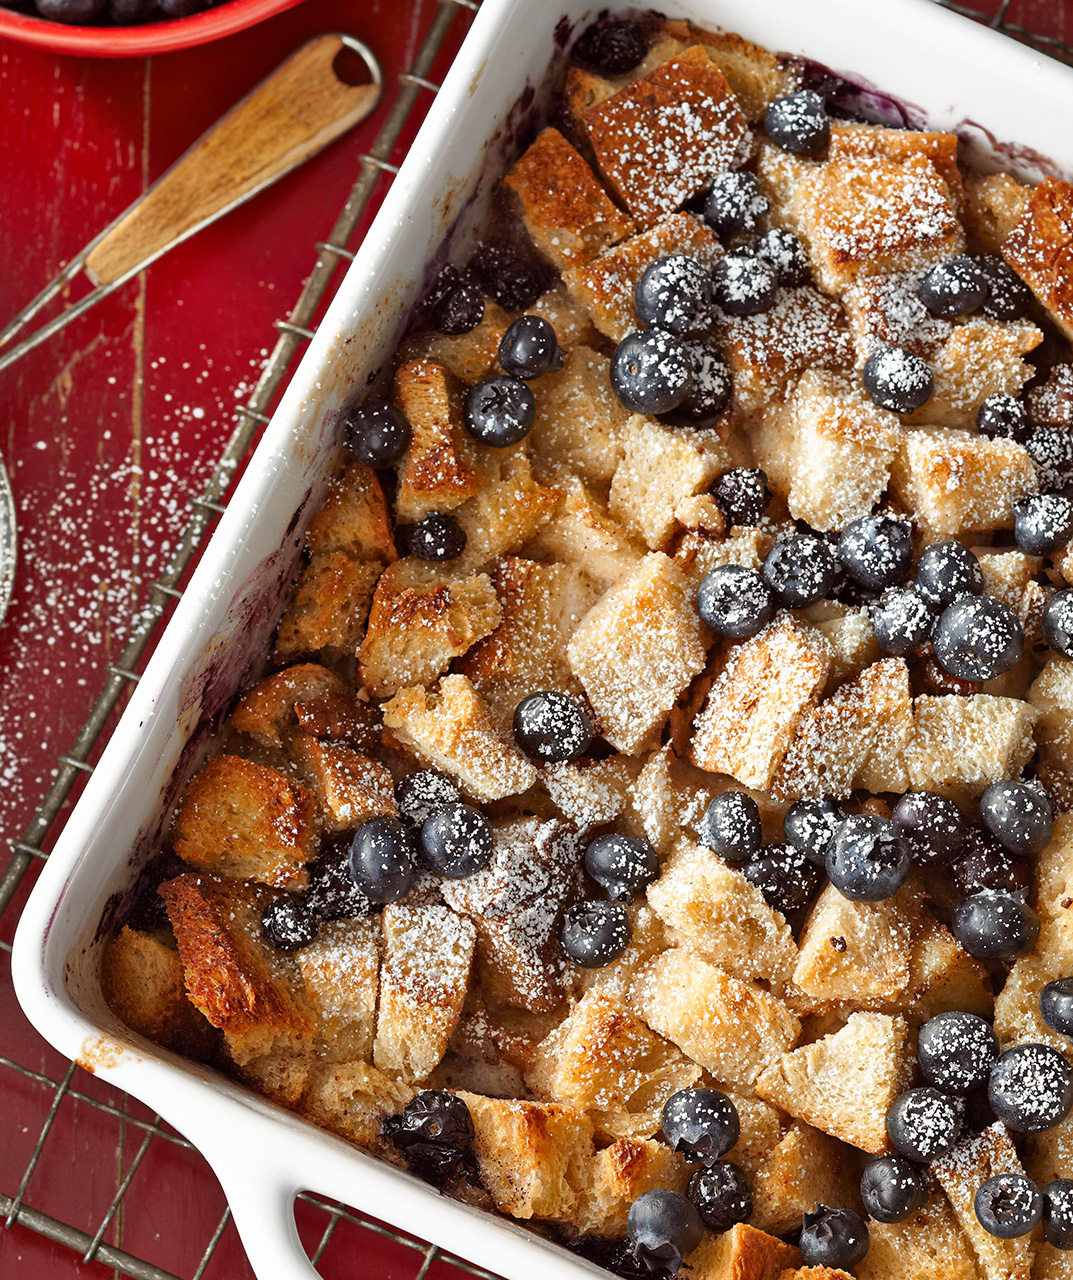 Blueberry Bread Pudding with Blueberry Sauce